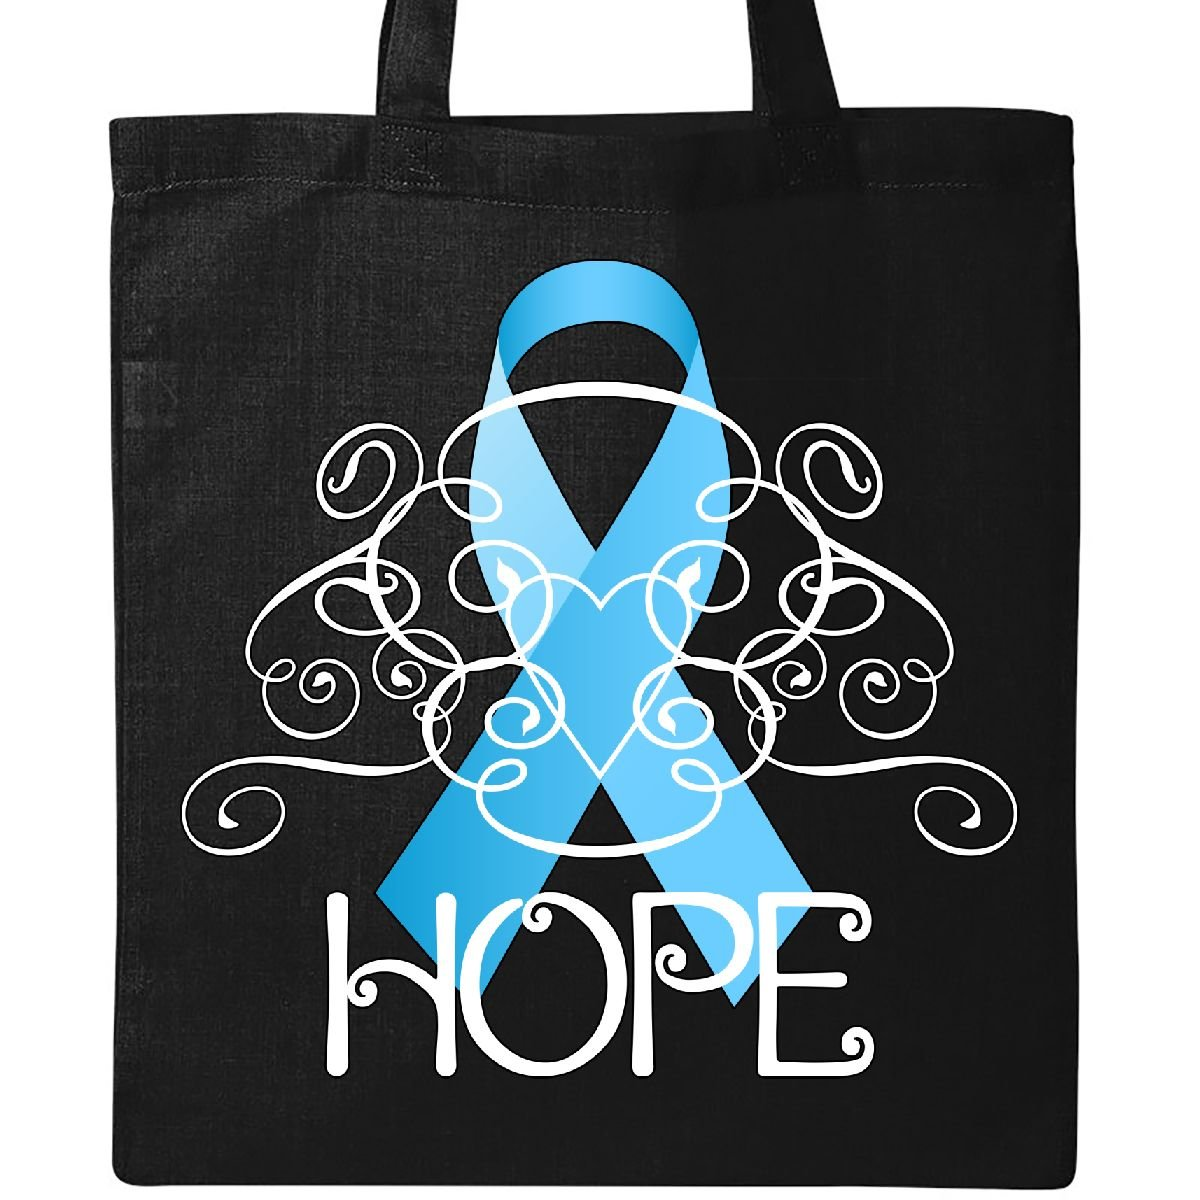 Inktastic – hope-prostate Cancer Awarenessトートバッグ One Size ブラック B076ZZ2X6S ブラック ブラック